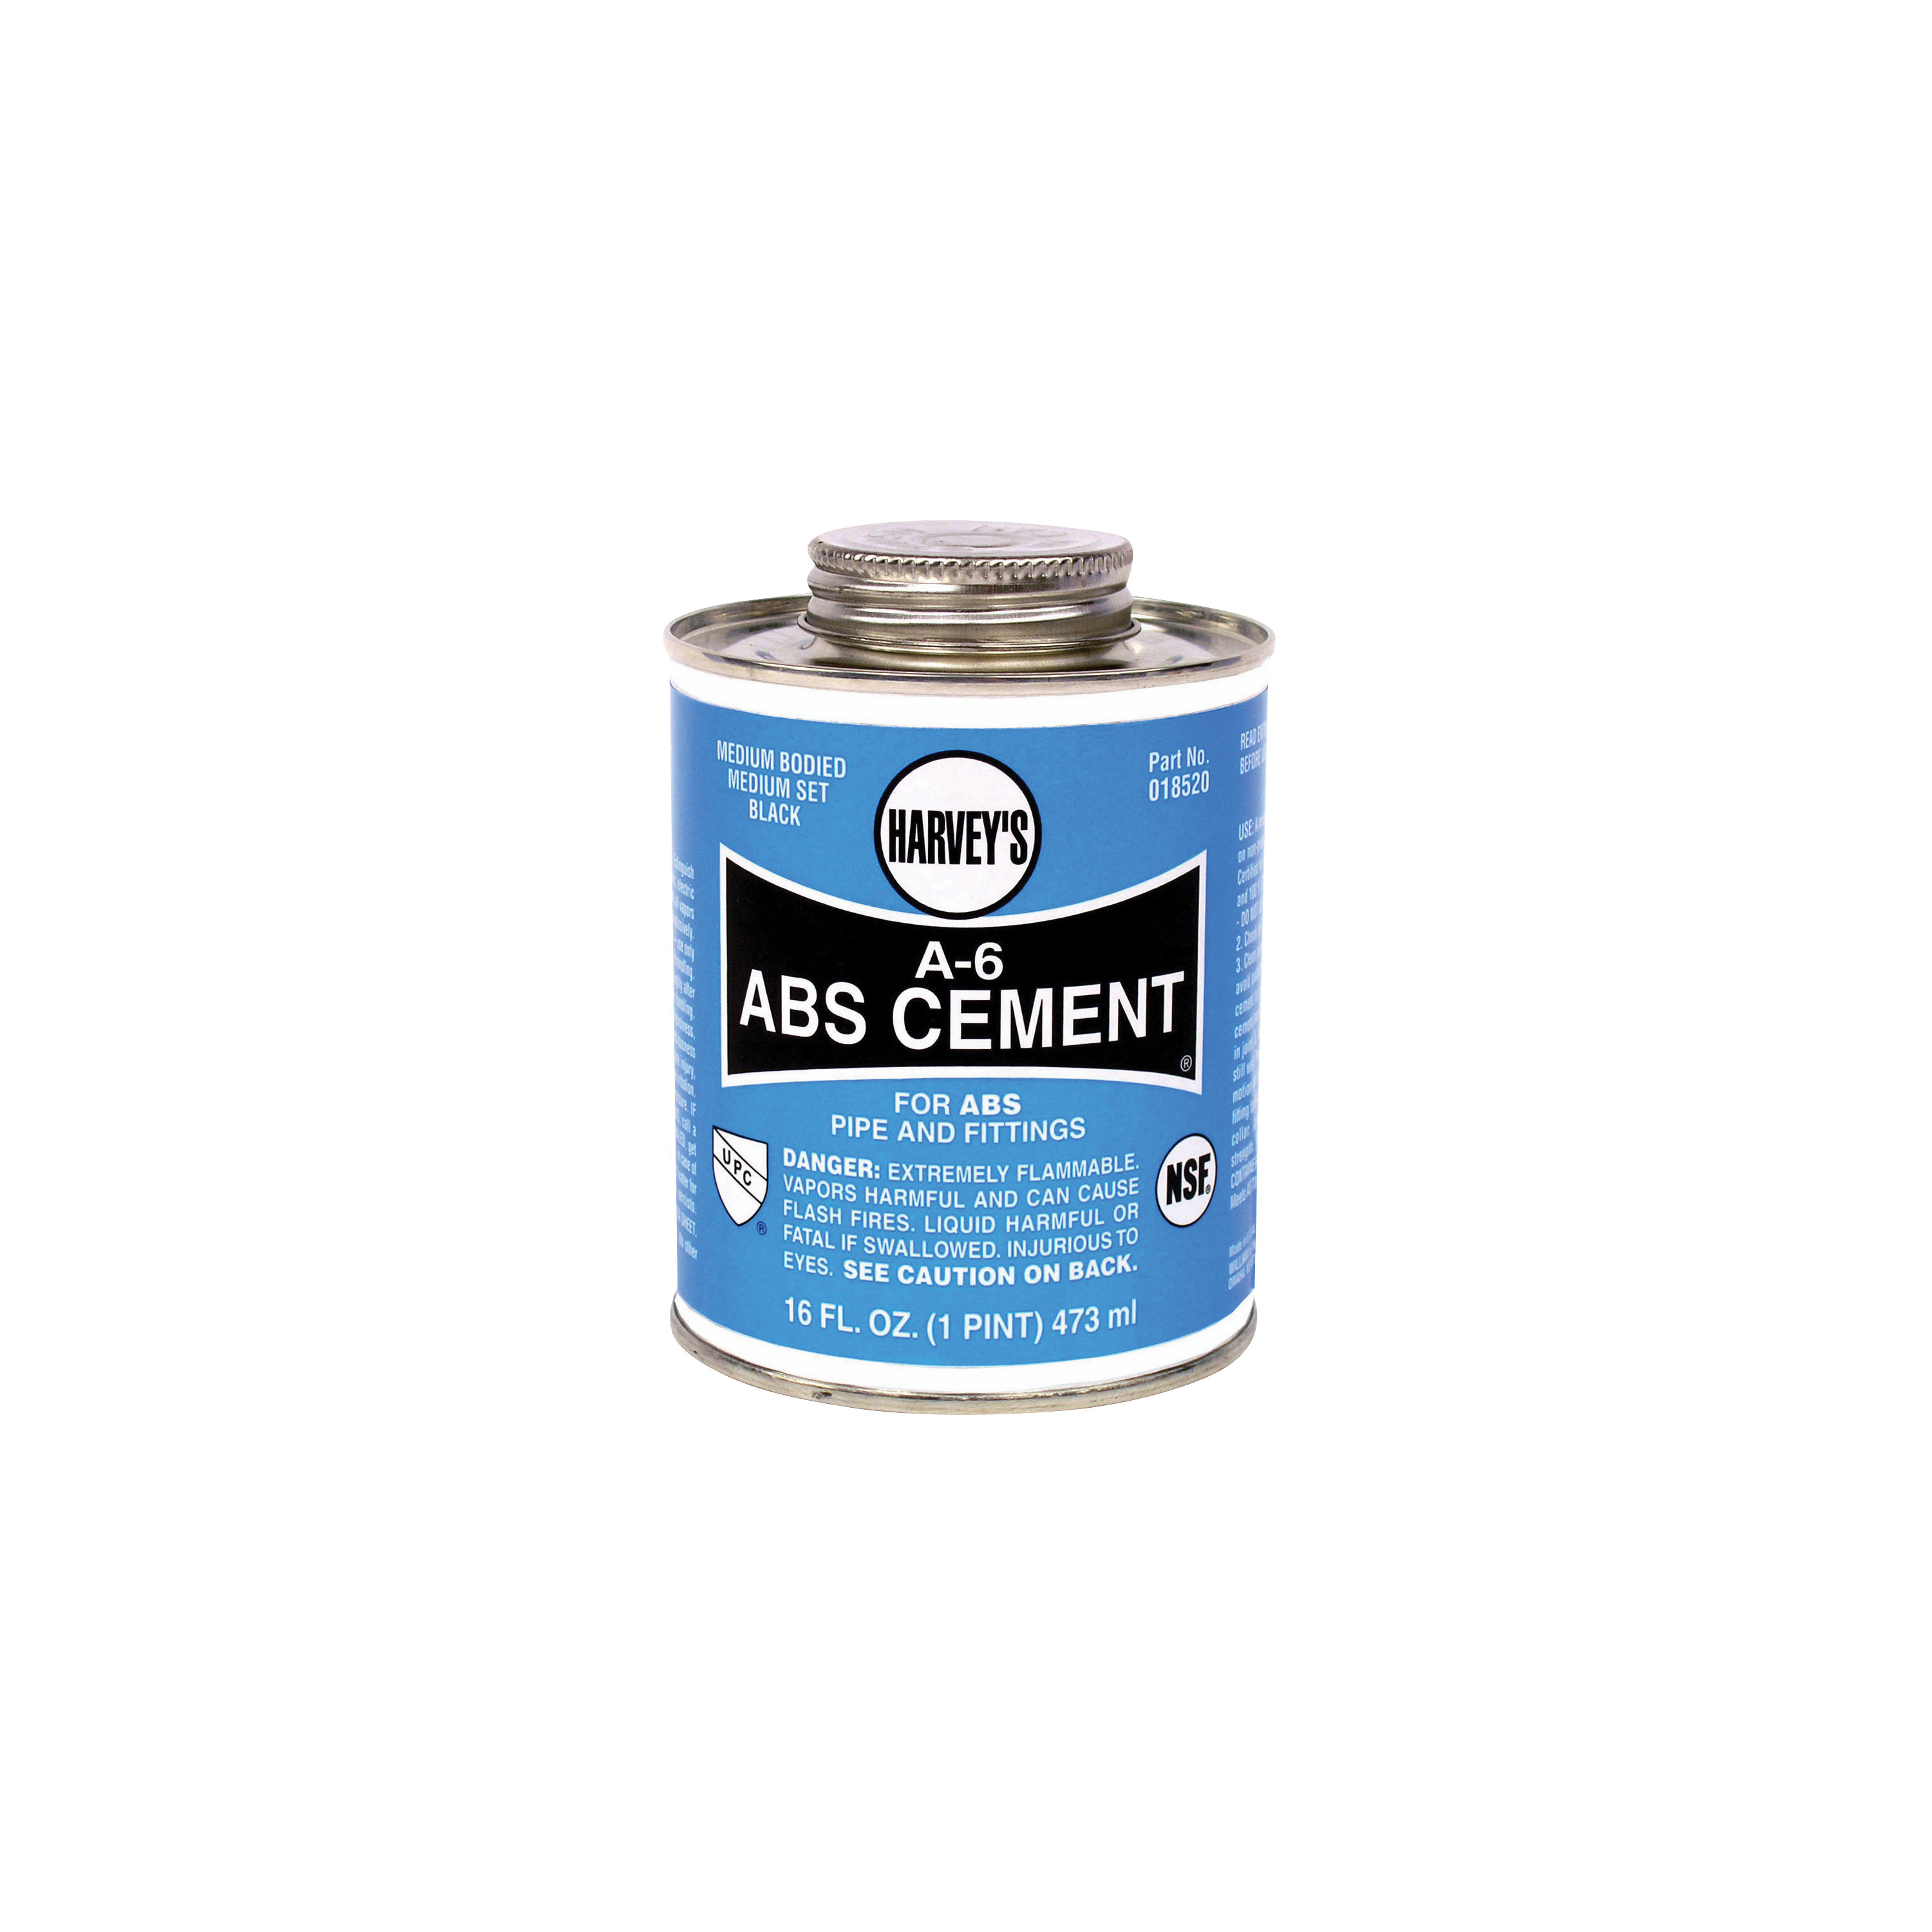 Picture of HARVEY A-6 Series 018520-12 Solvent Cement, Opaque Liquid, Black, 16 oz Package, Can